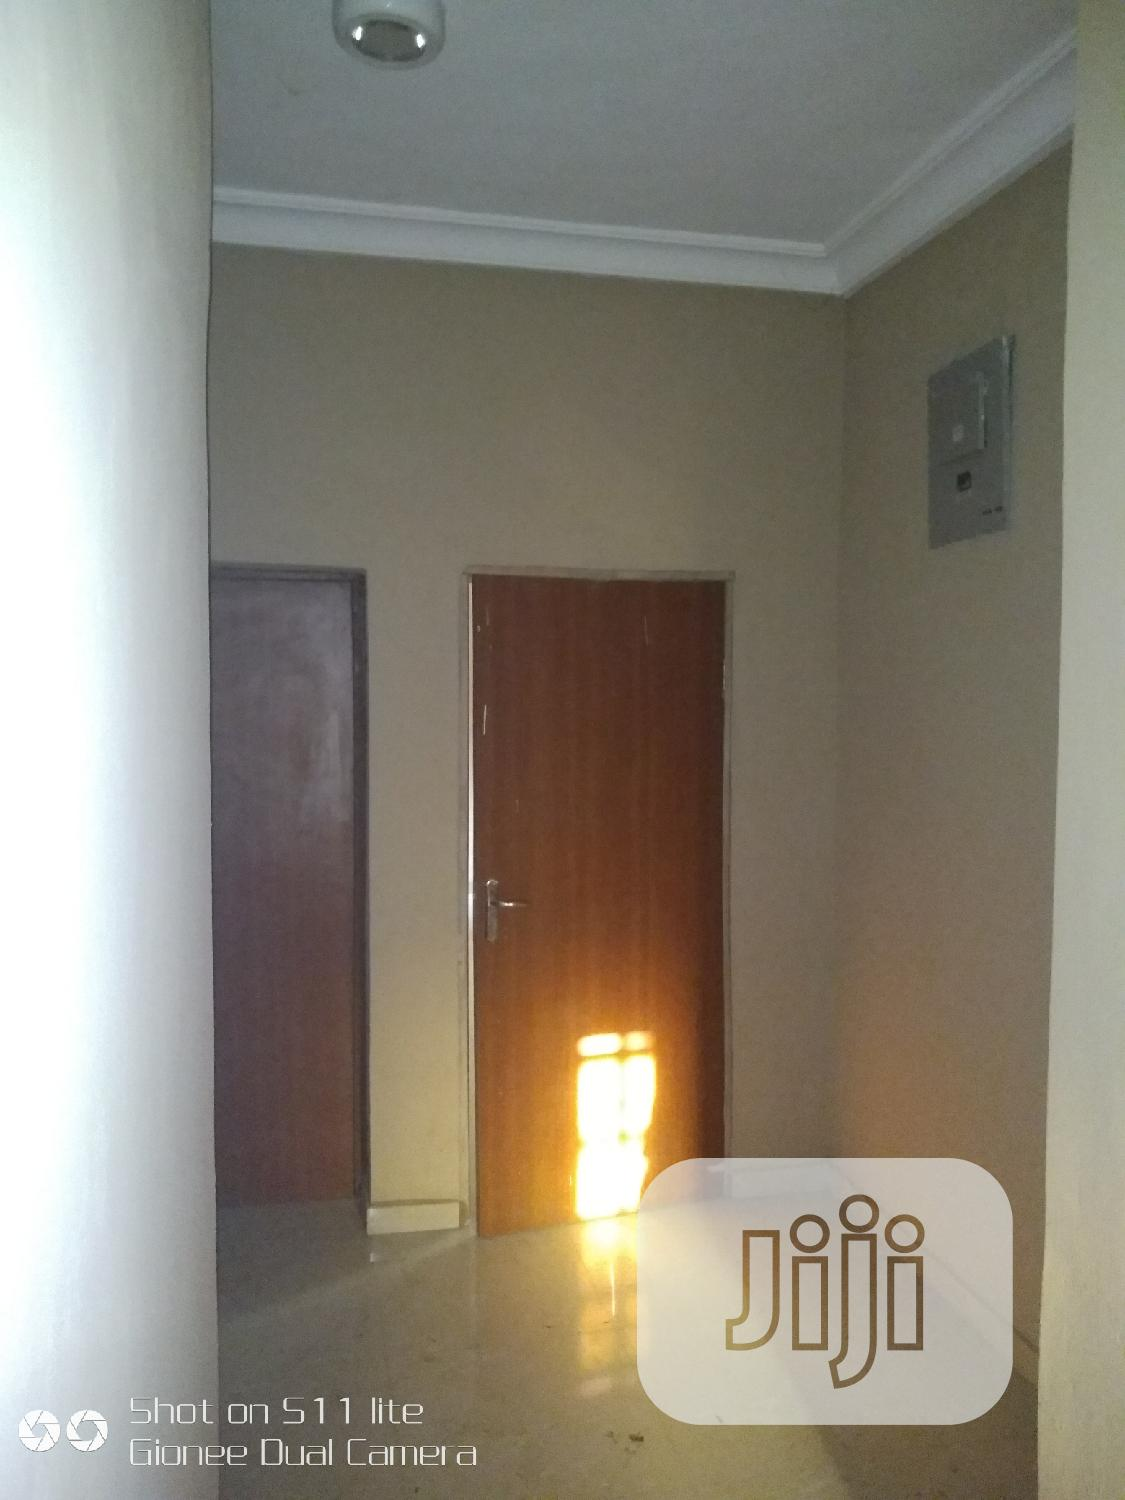 Archive: To Let 3bedroom Wit Jacuzzi in Martin's Estate Akute 400k Pa Yr